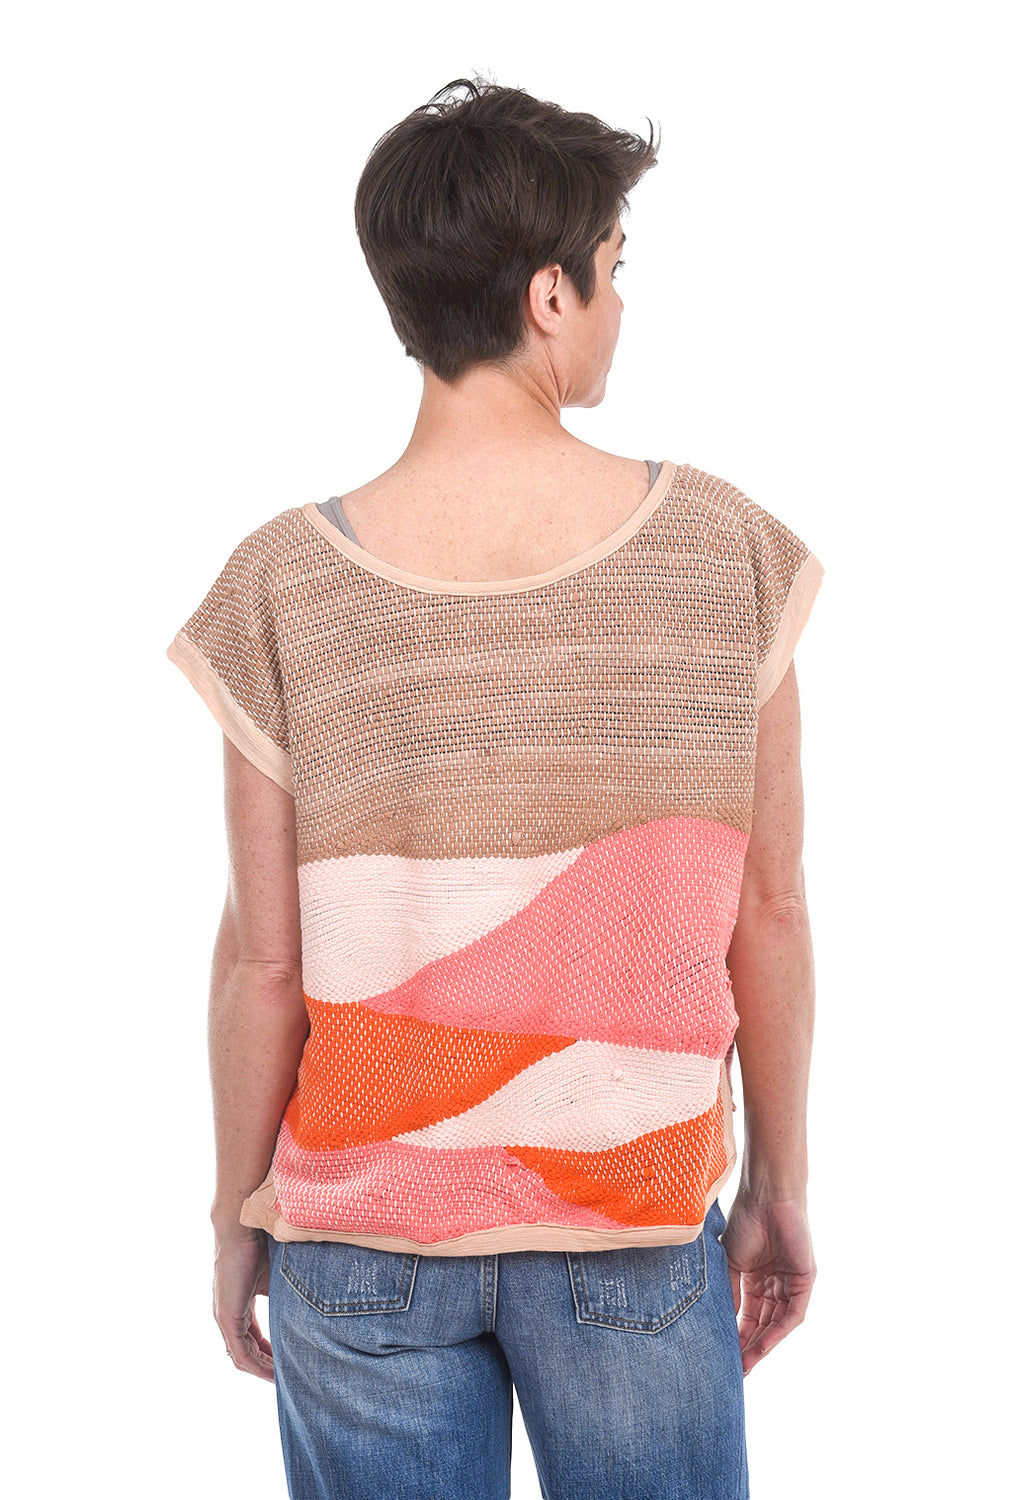 Tonle Landscape Top, Mesa Orange One Size Orange